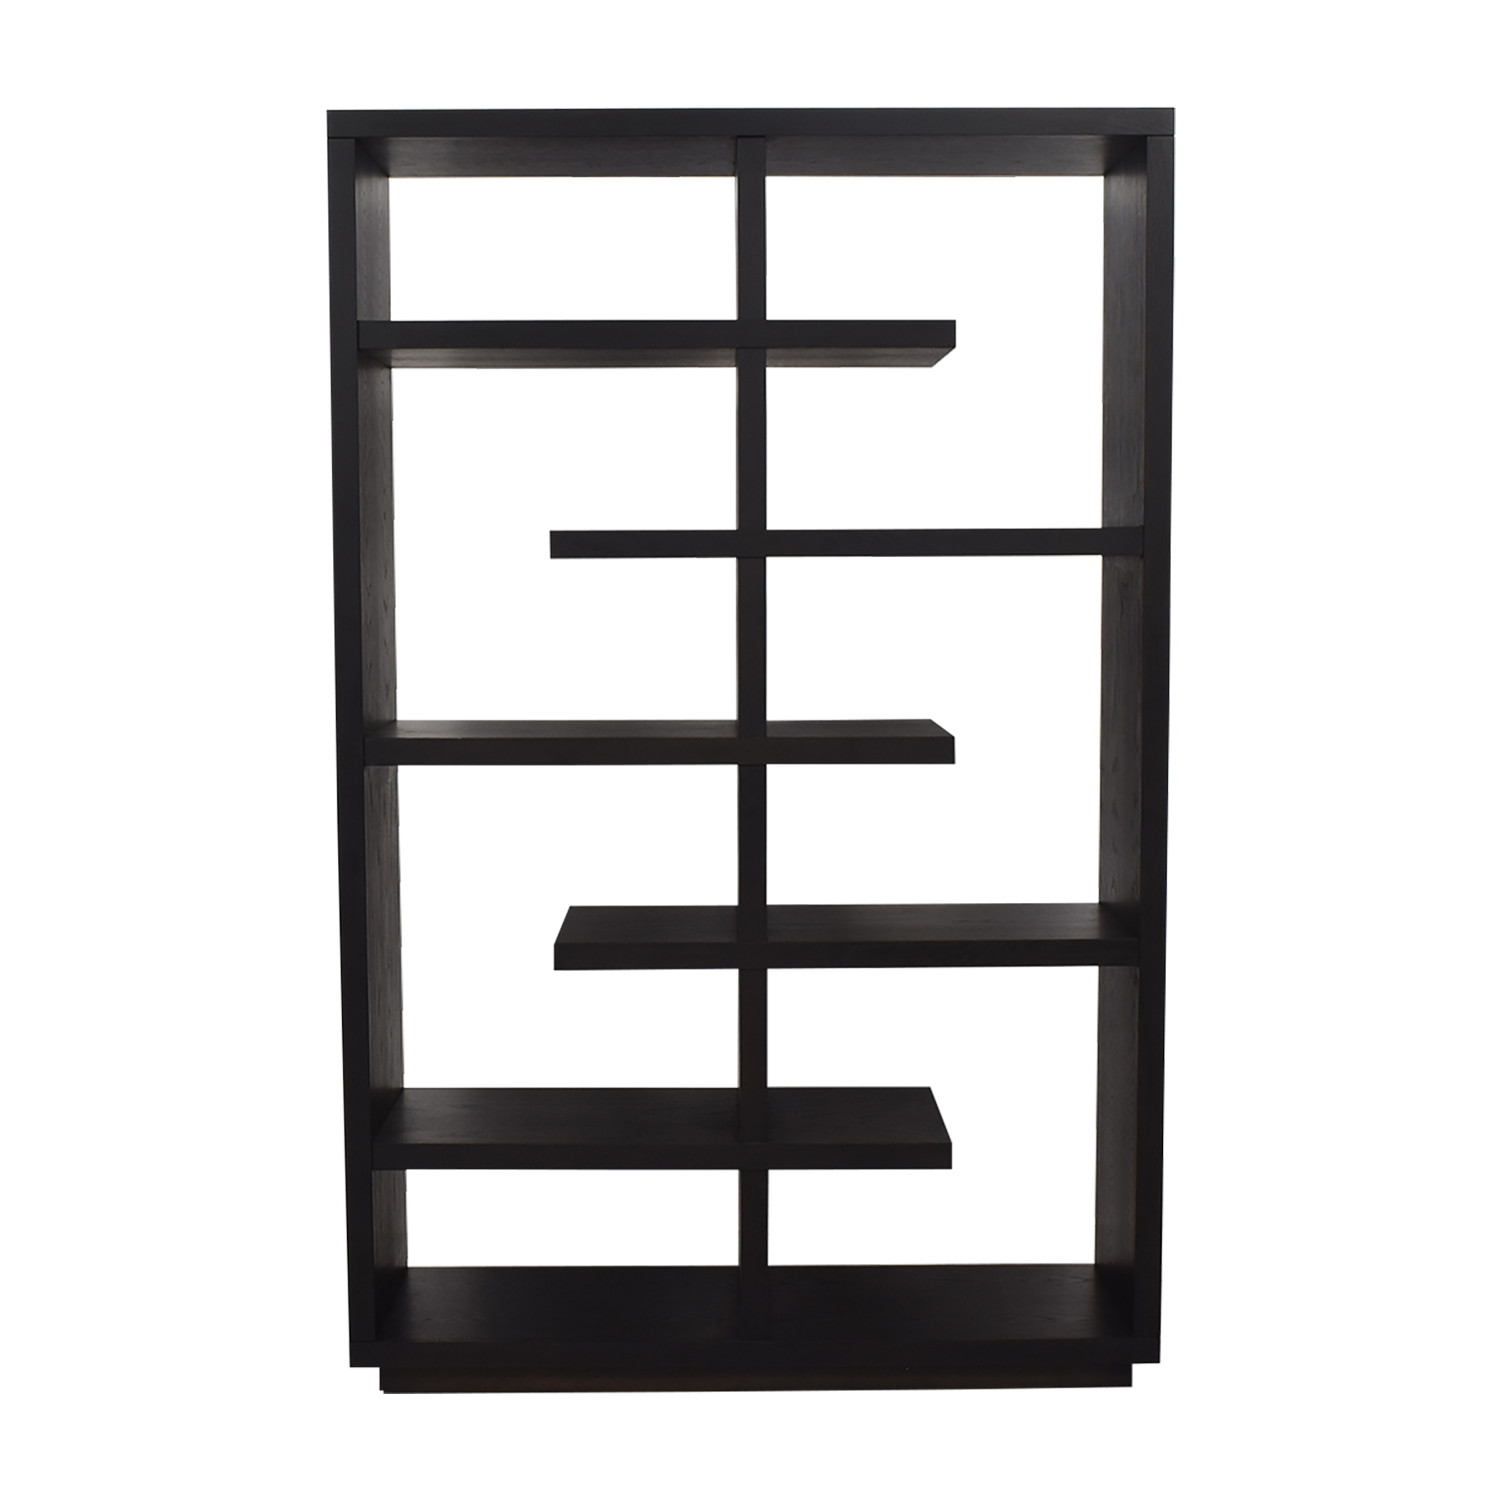 Crate & Barrel Crate & Barrel Elevate Bookcase Bookcases & Shelving